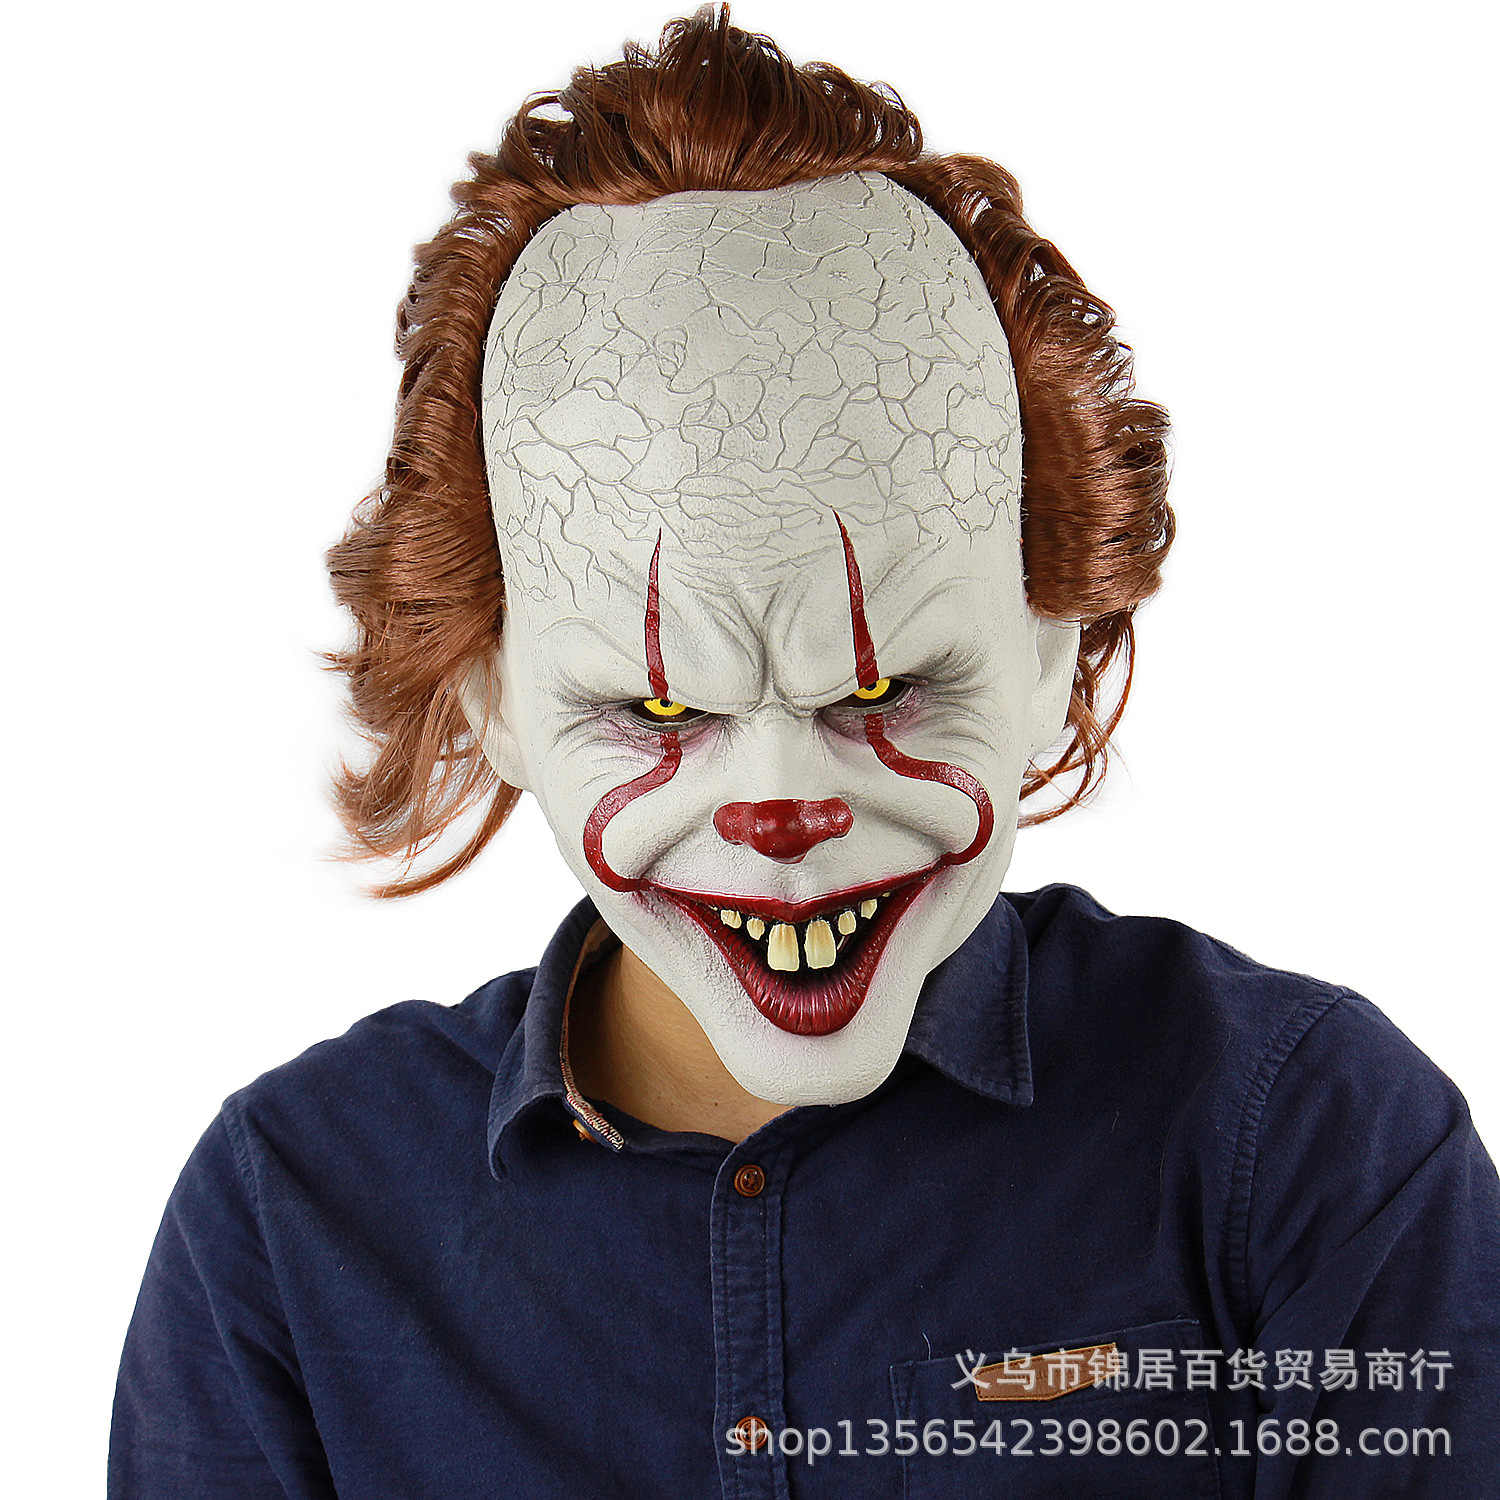 Masque It King's masque Stephen Pennywise Clown d'horreur, masque de Clown en Latex, accessoires de Costume Cosplay d'halloween